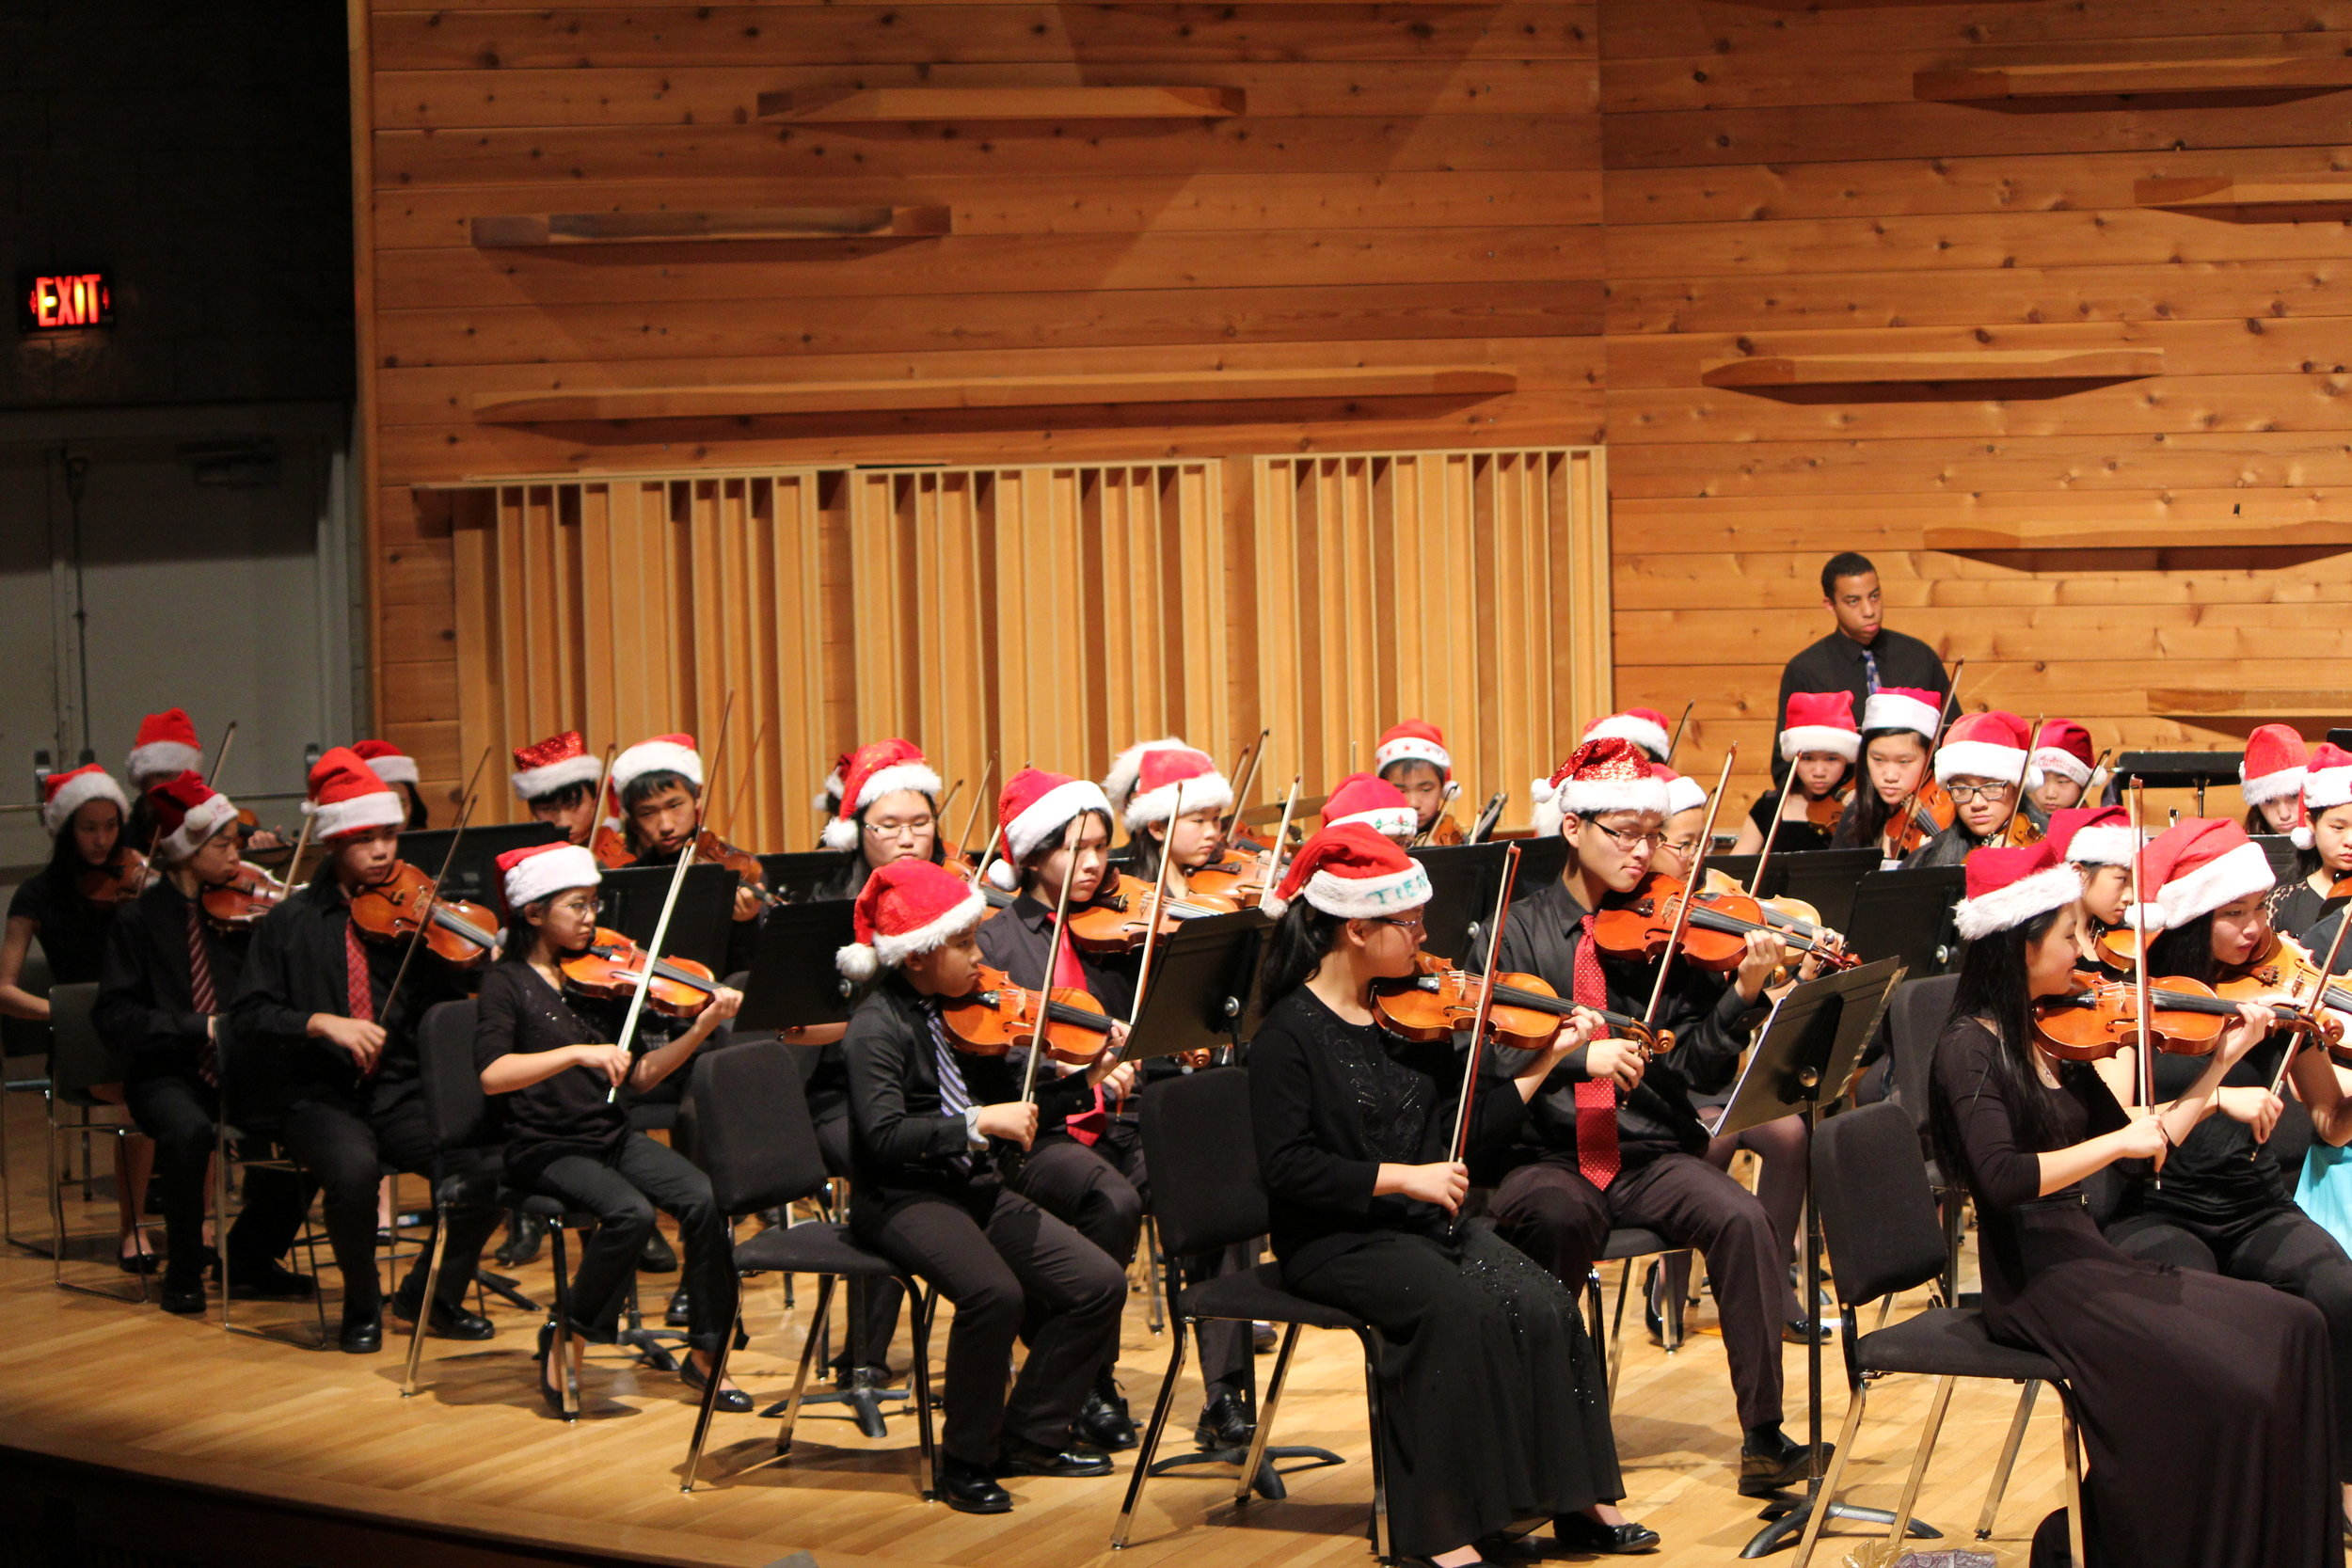 Violinists in the Christmas spirit